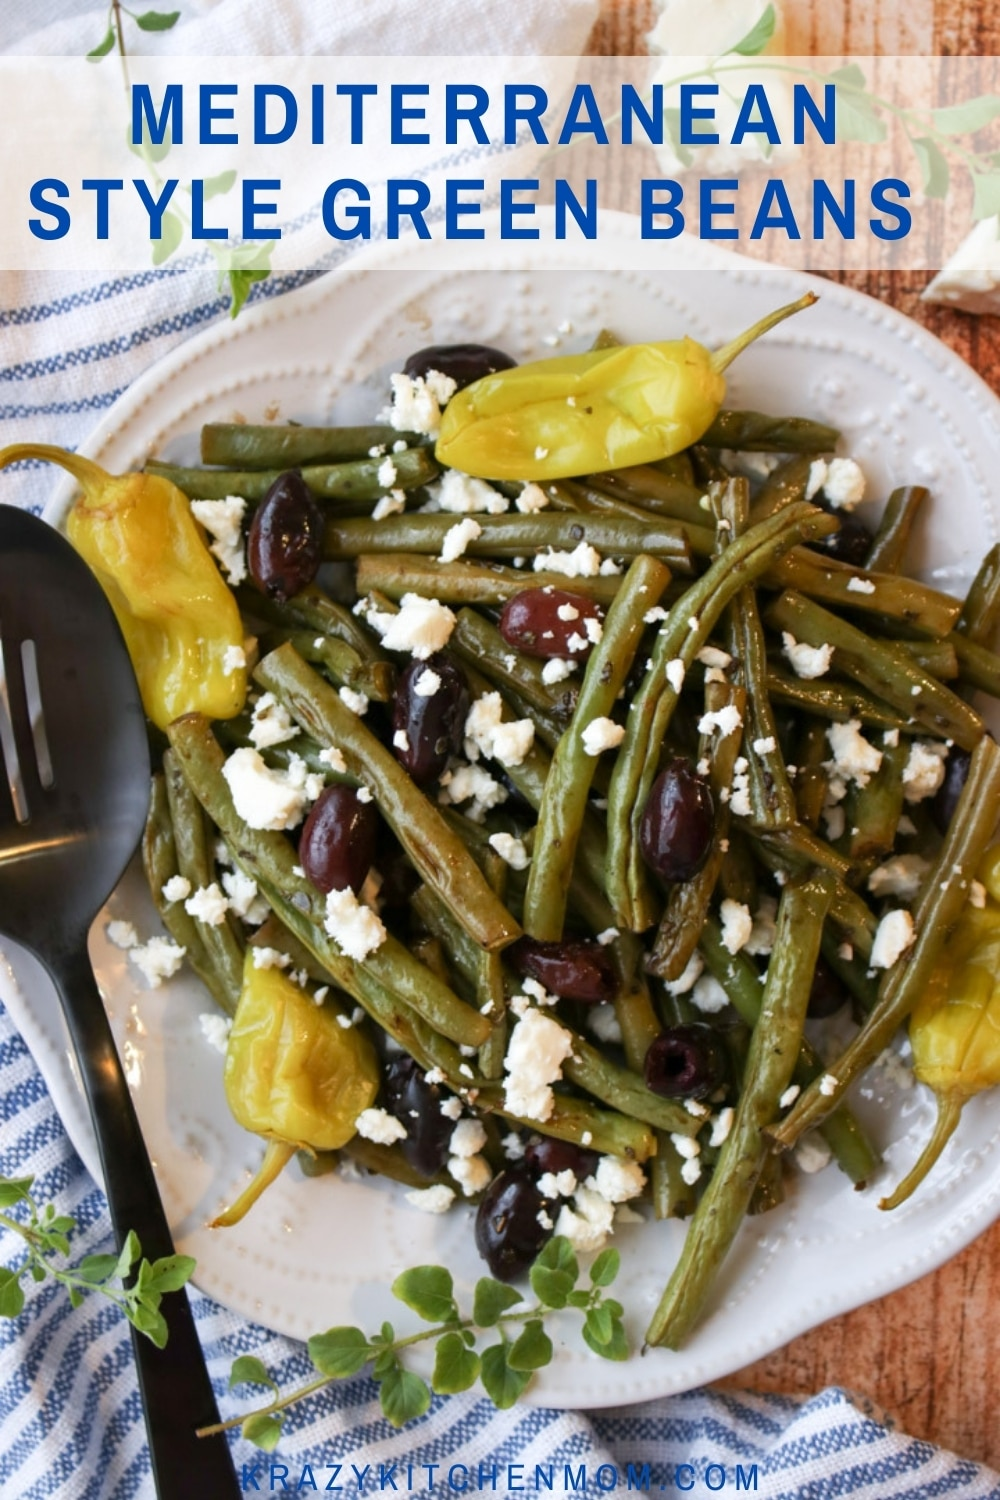 Transform the humble green bean into a gourmet dish by roasting them with oil olive, olives, oregano, and pepperoncini peppers. via @krazykitchenmom